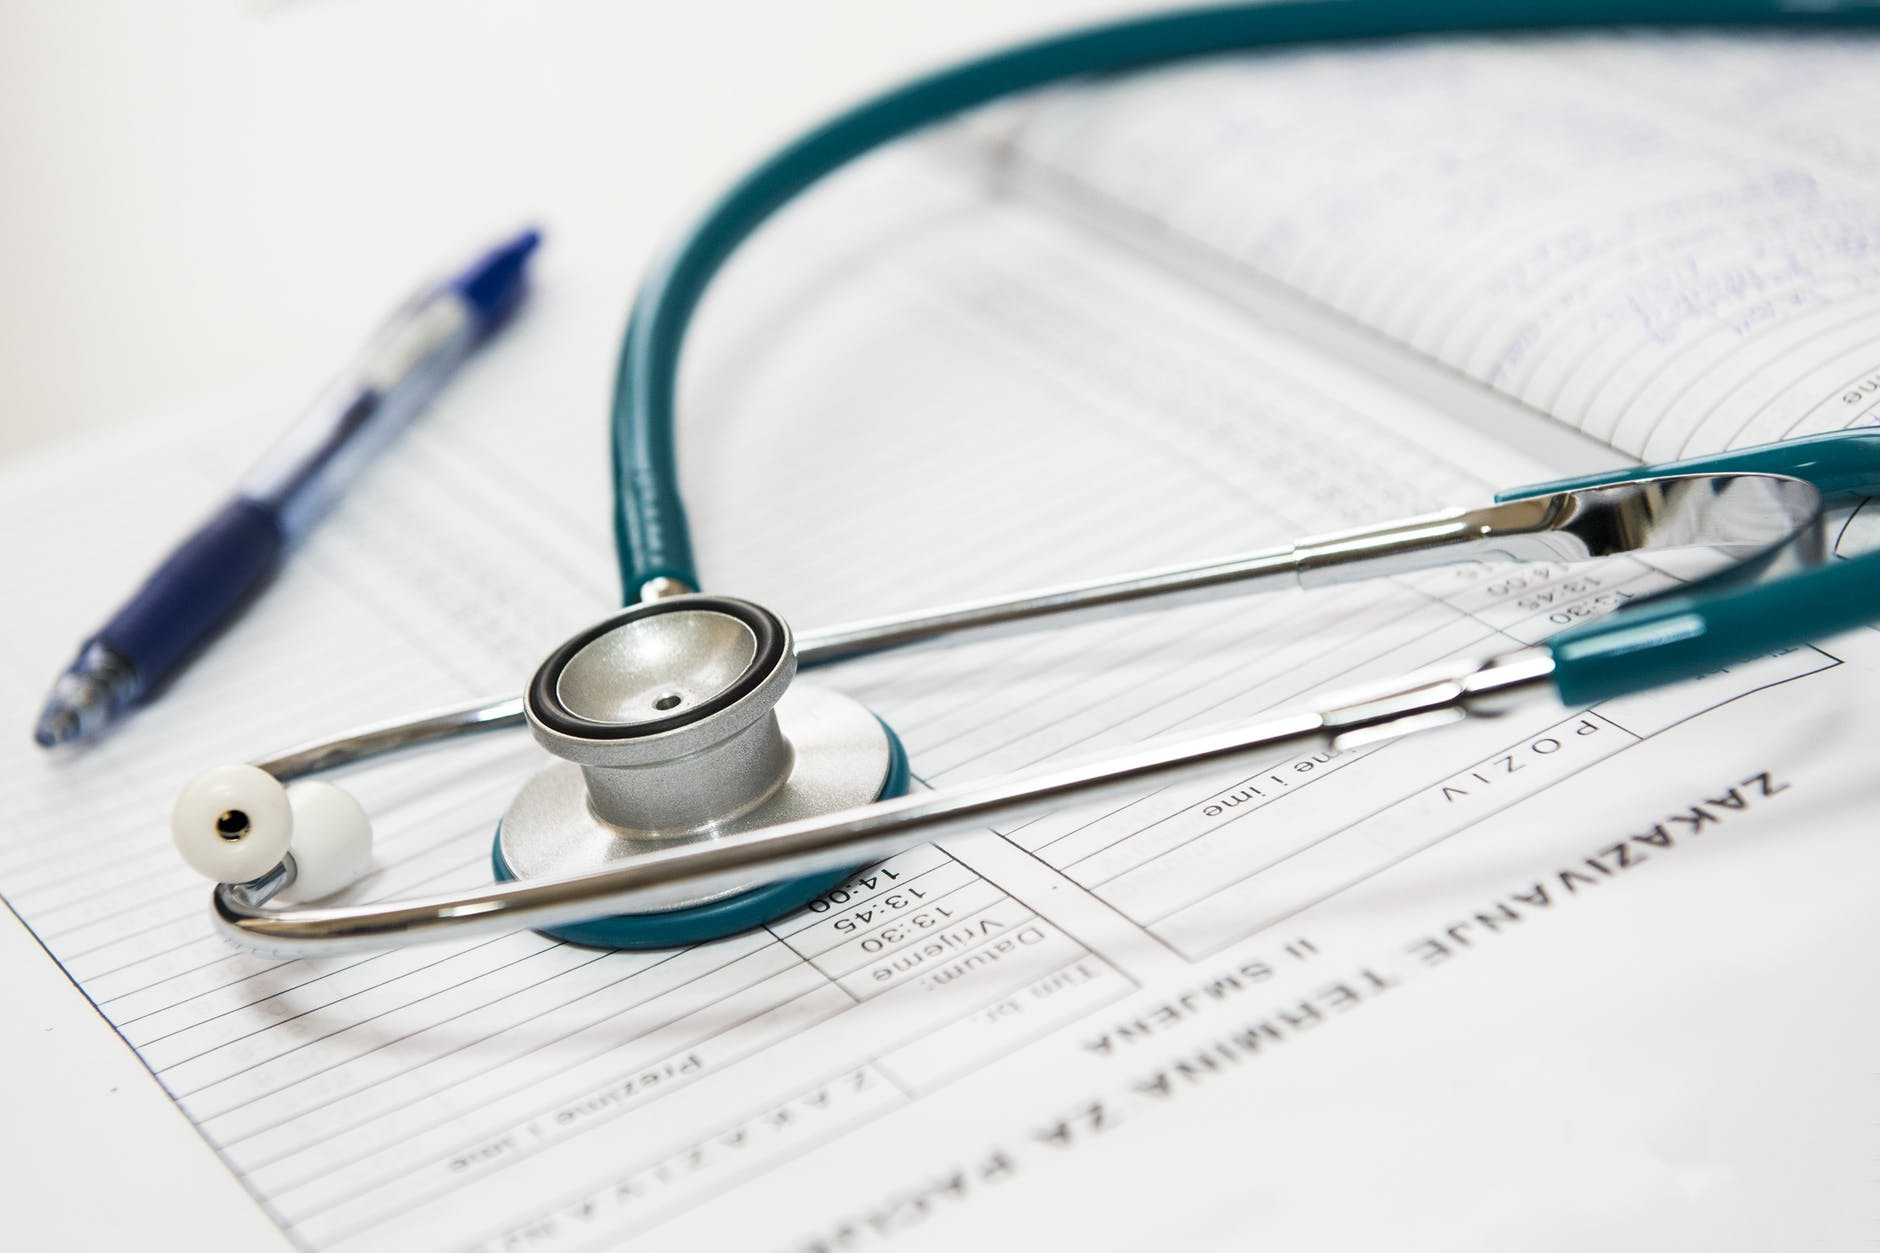 Sharing Medical Records Between Providers: 5 Best Practices